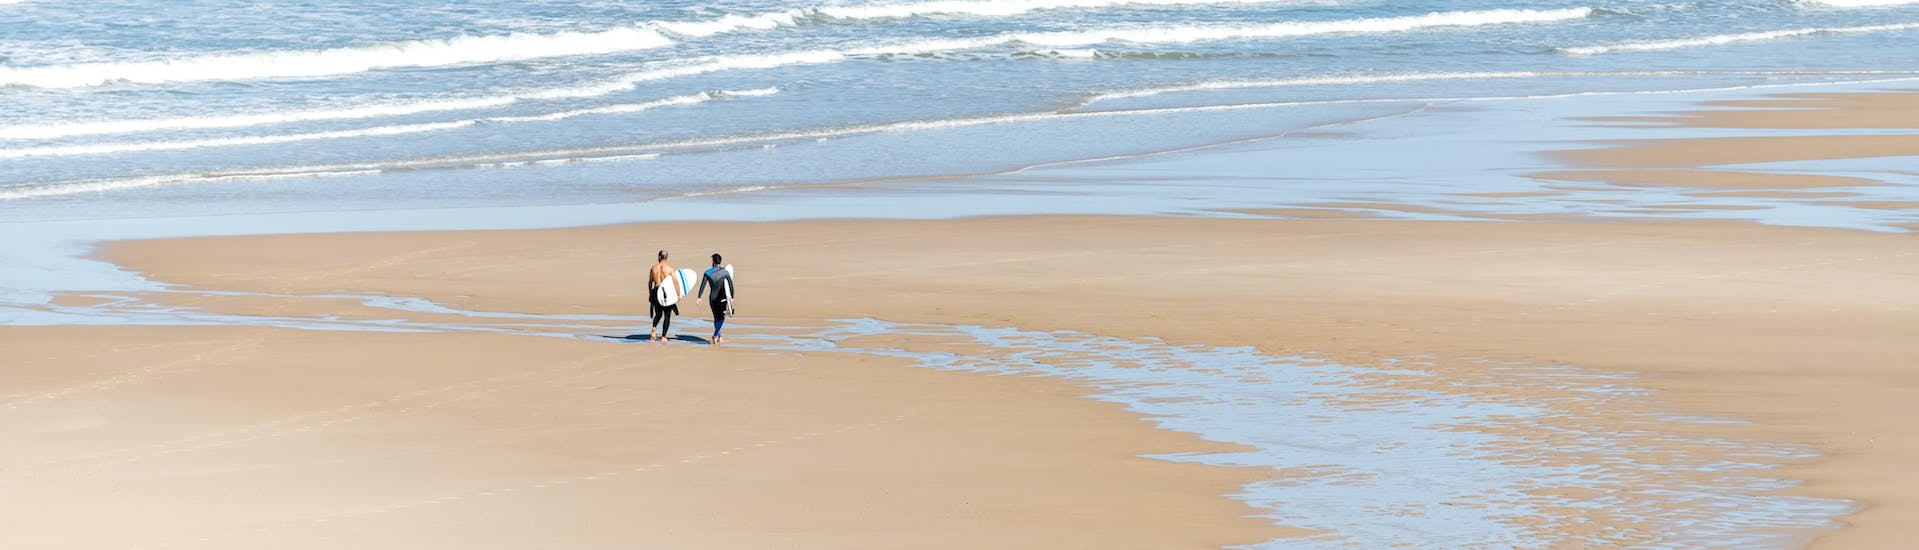 Two men are walking on the beach of Lacanau with their surfboard under their arm, where many surfing lessons take place.